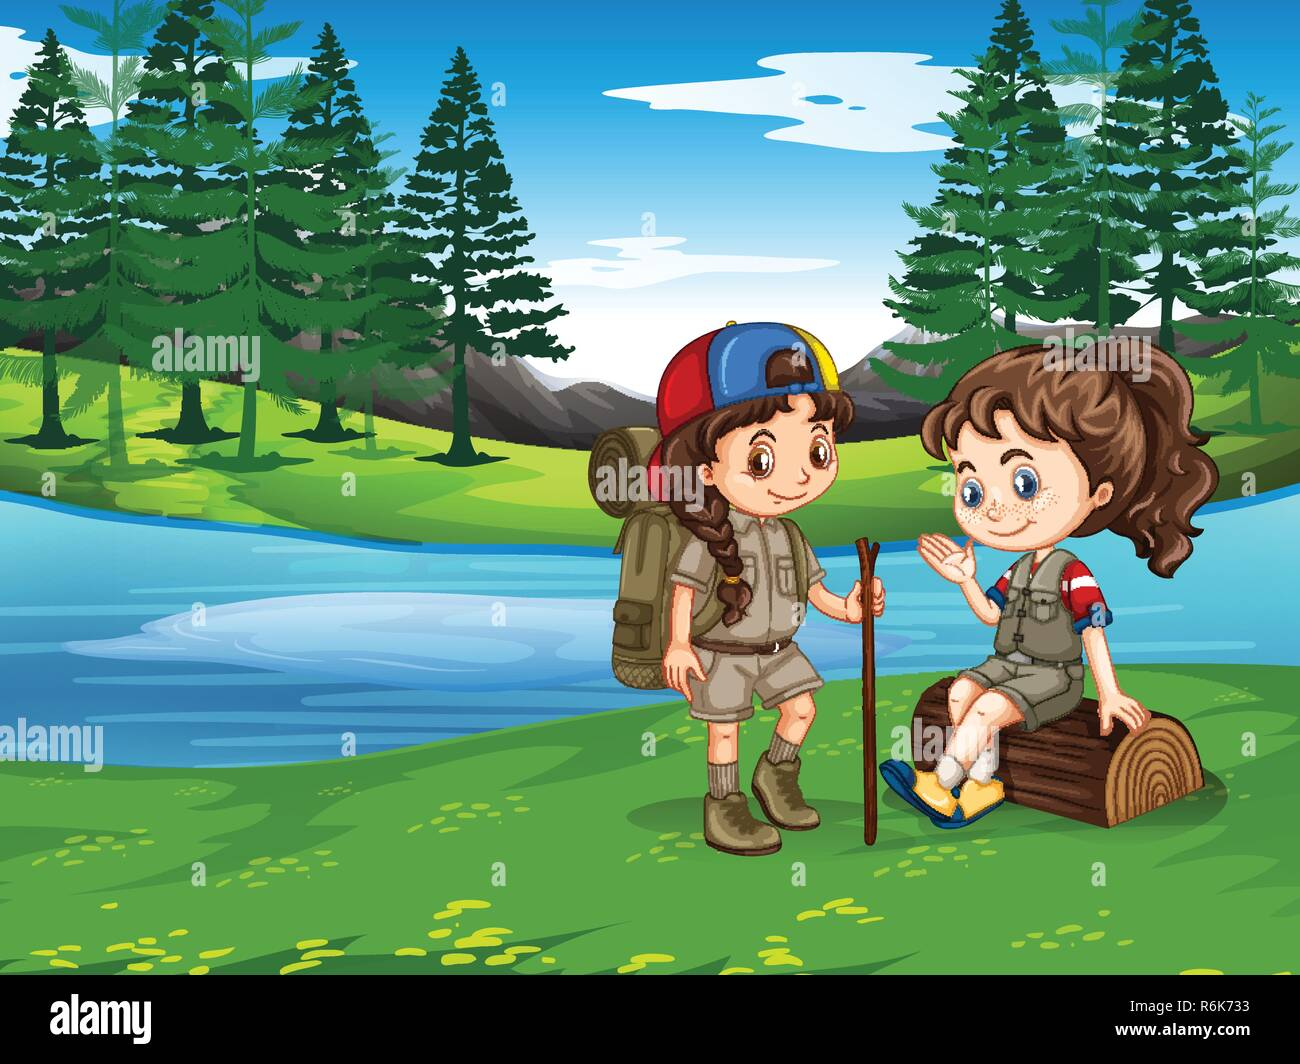 Girl scout hiking in nature illustration - Stock Vector